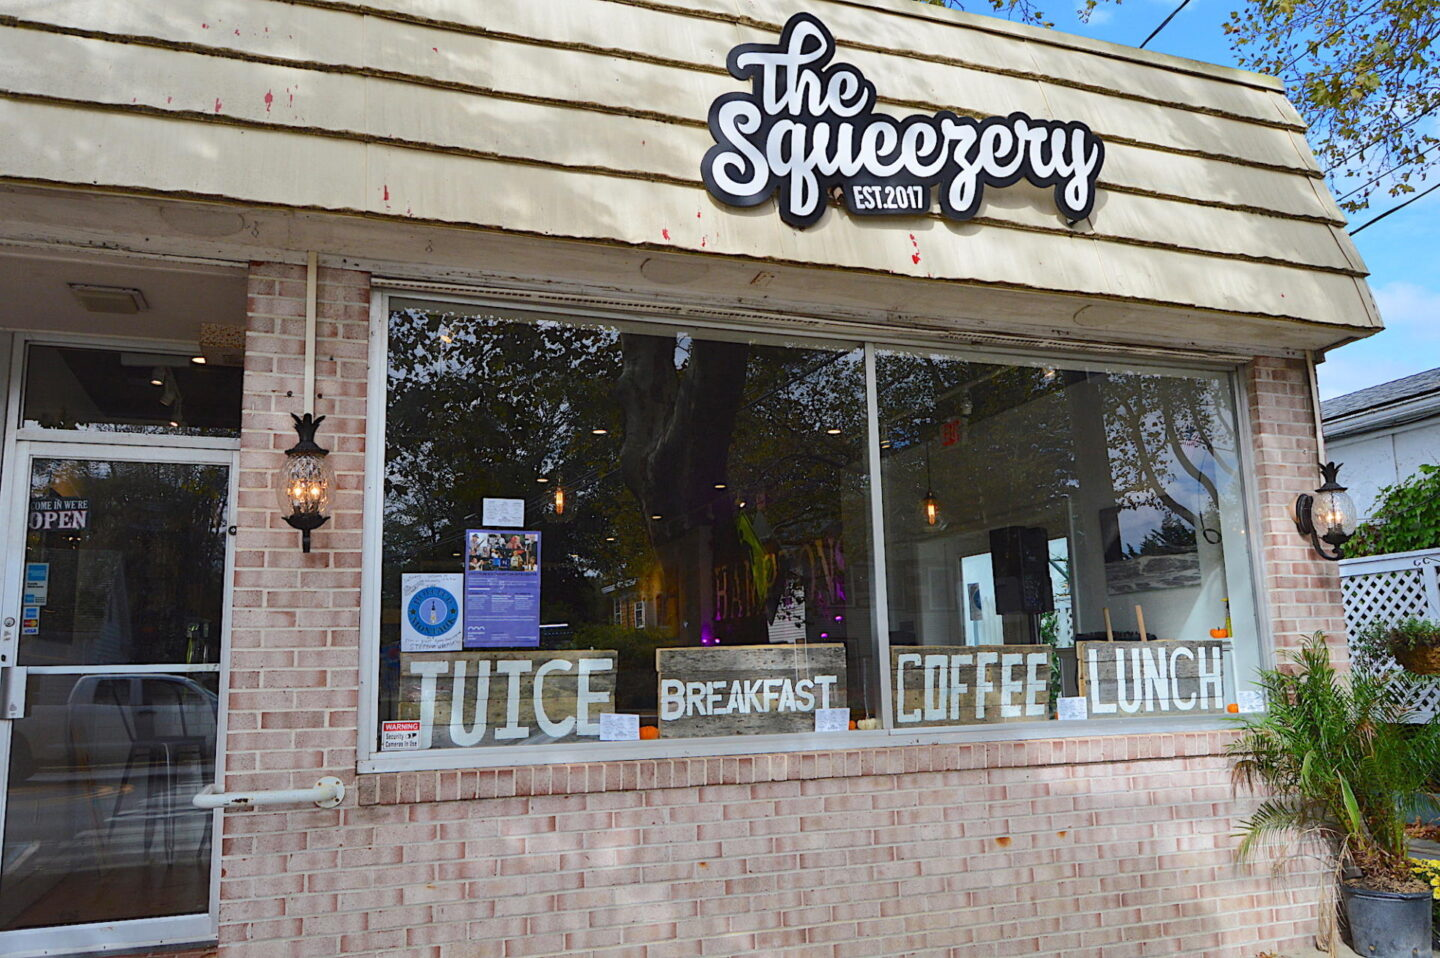 The Squeezery in Amagansett